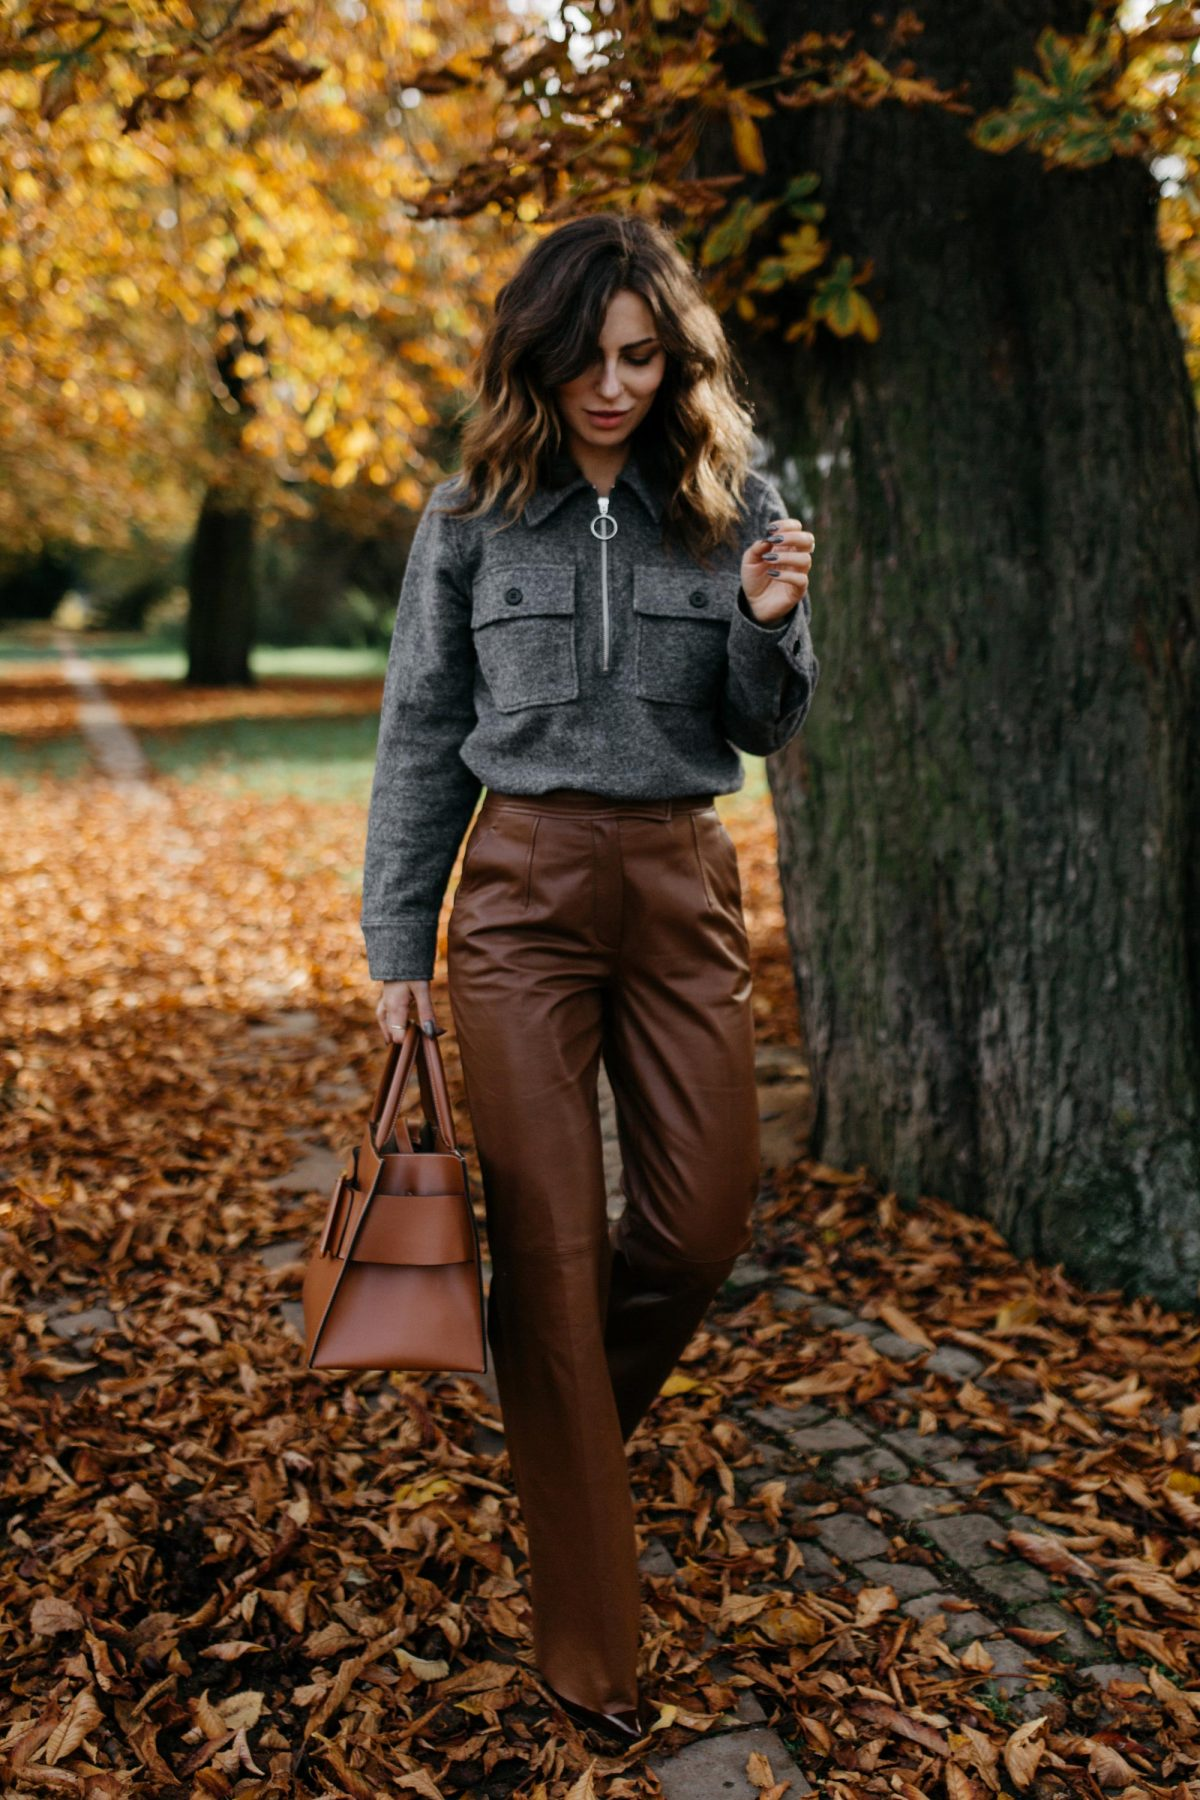 The Brown Leather